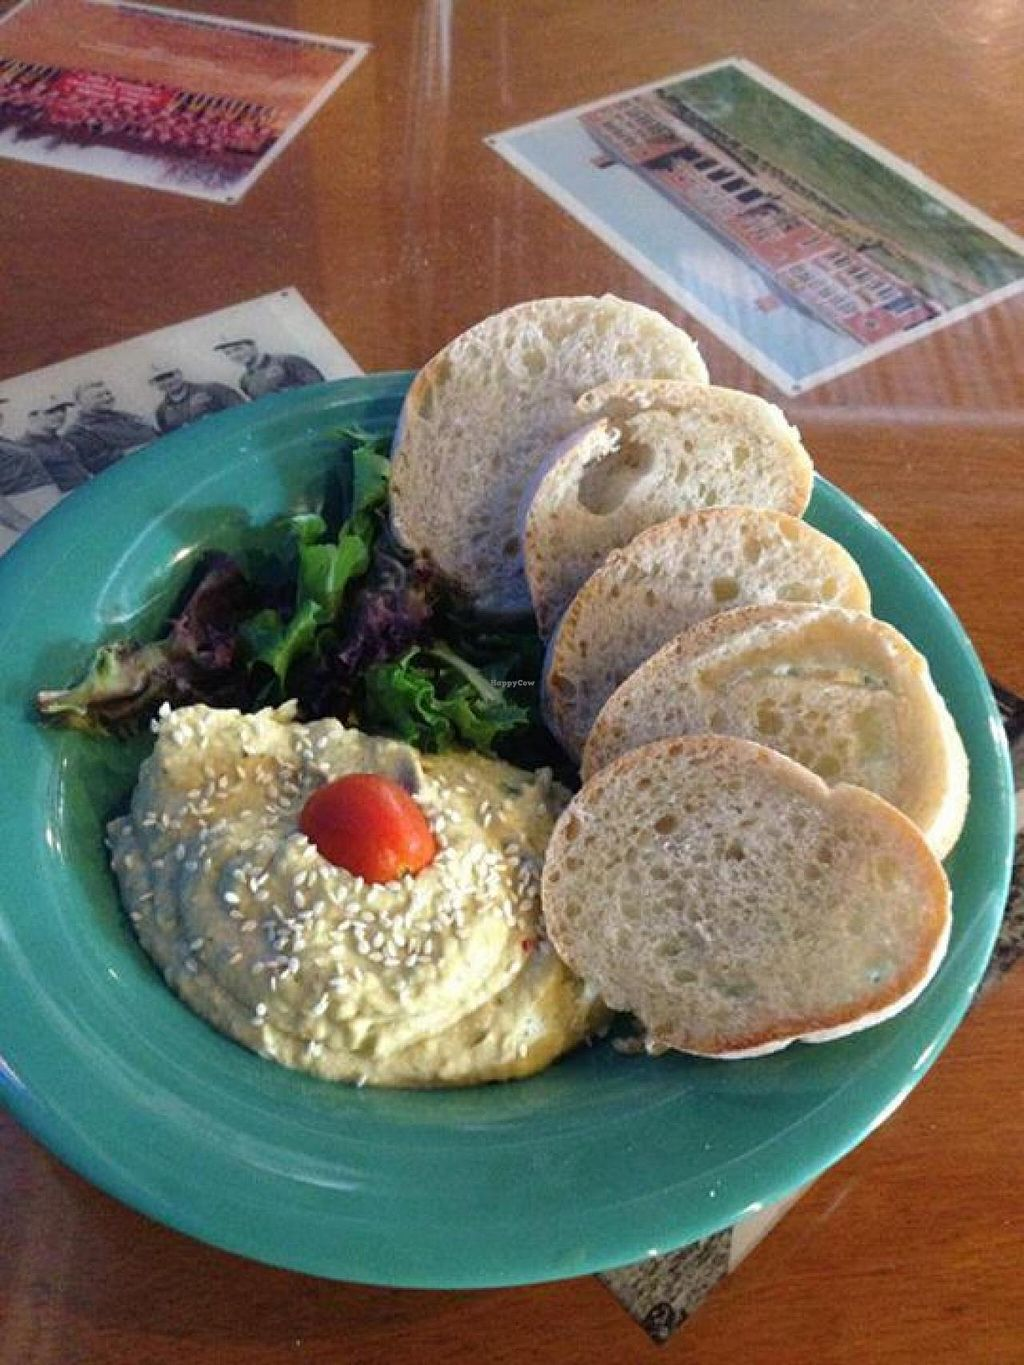 "Photo of Pandoras Pies  by <a href=""/members/profile/community"">community</a> <br/>Roasted Thai Chili Hummus with Coconut <br/> February 7, 2014  - <a href='/contact/abuse/image/44733/63854'>Report</a>"